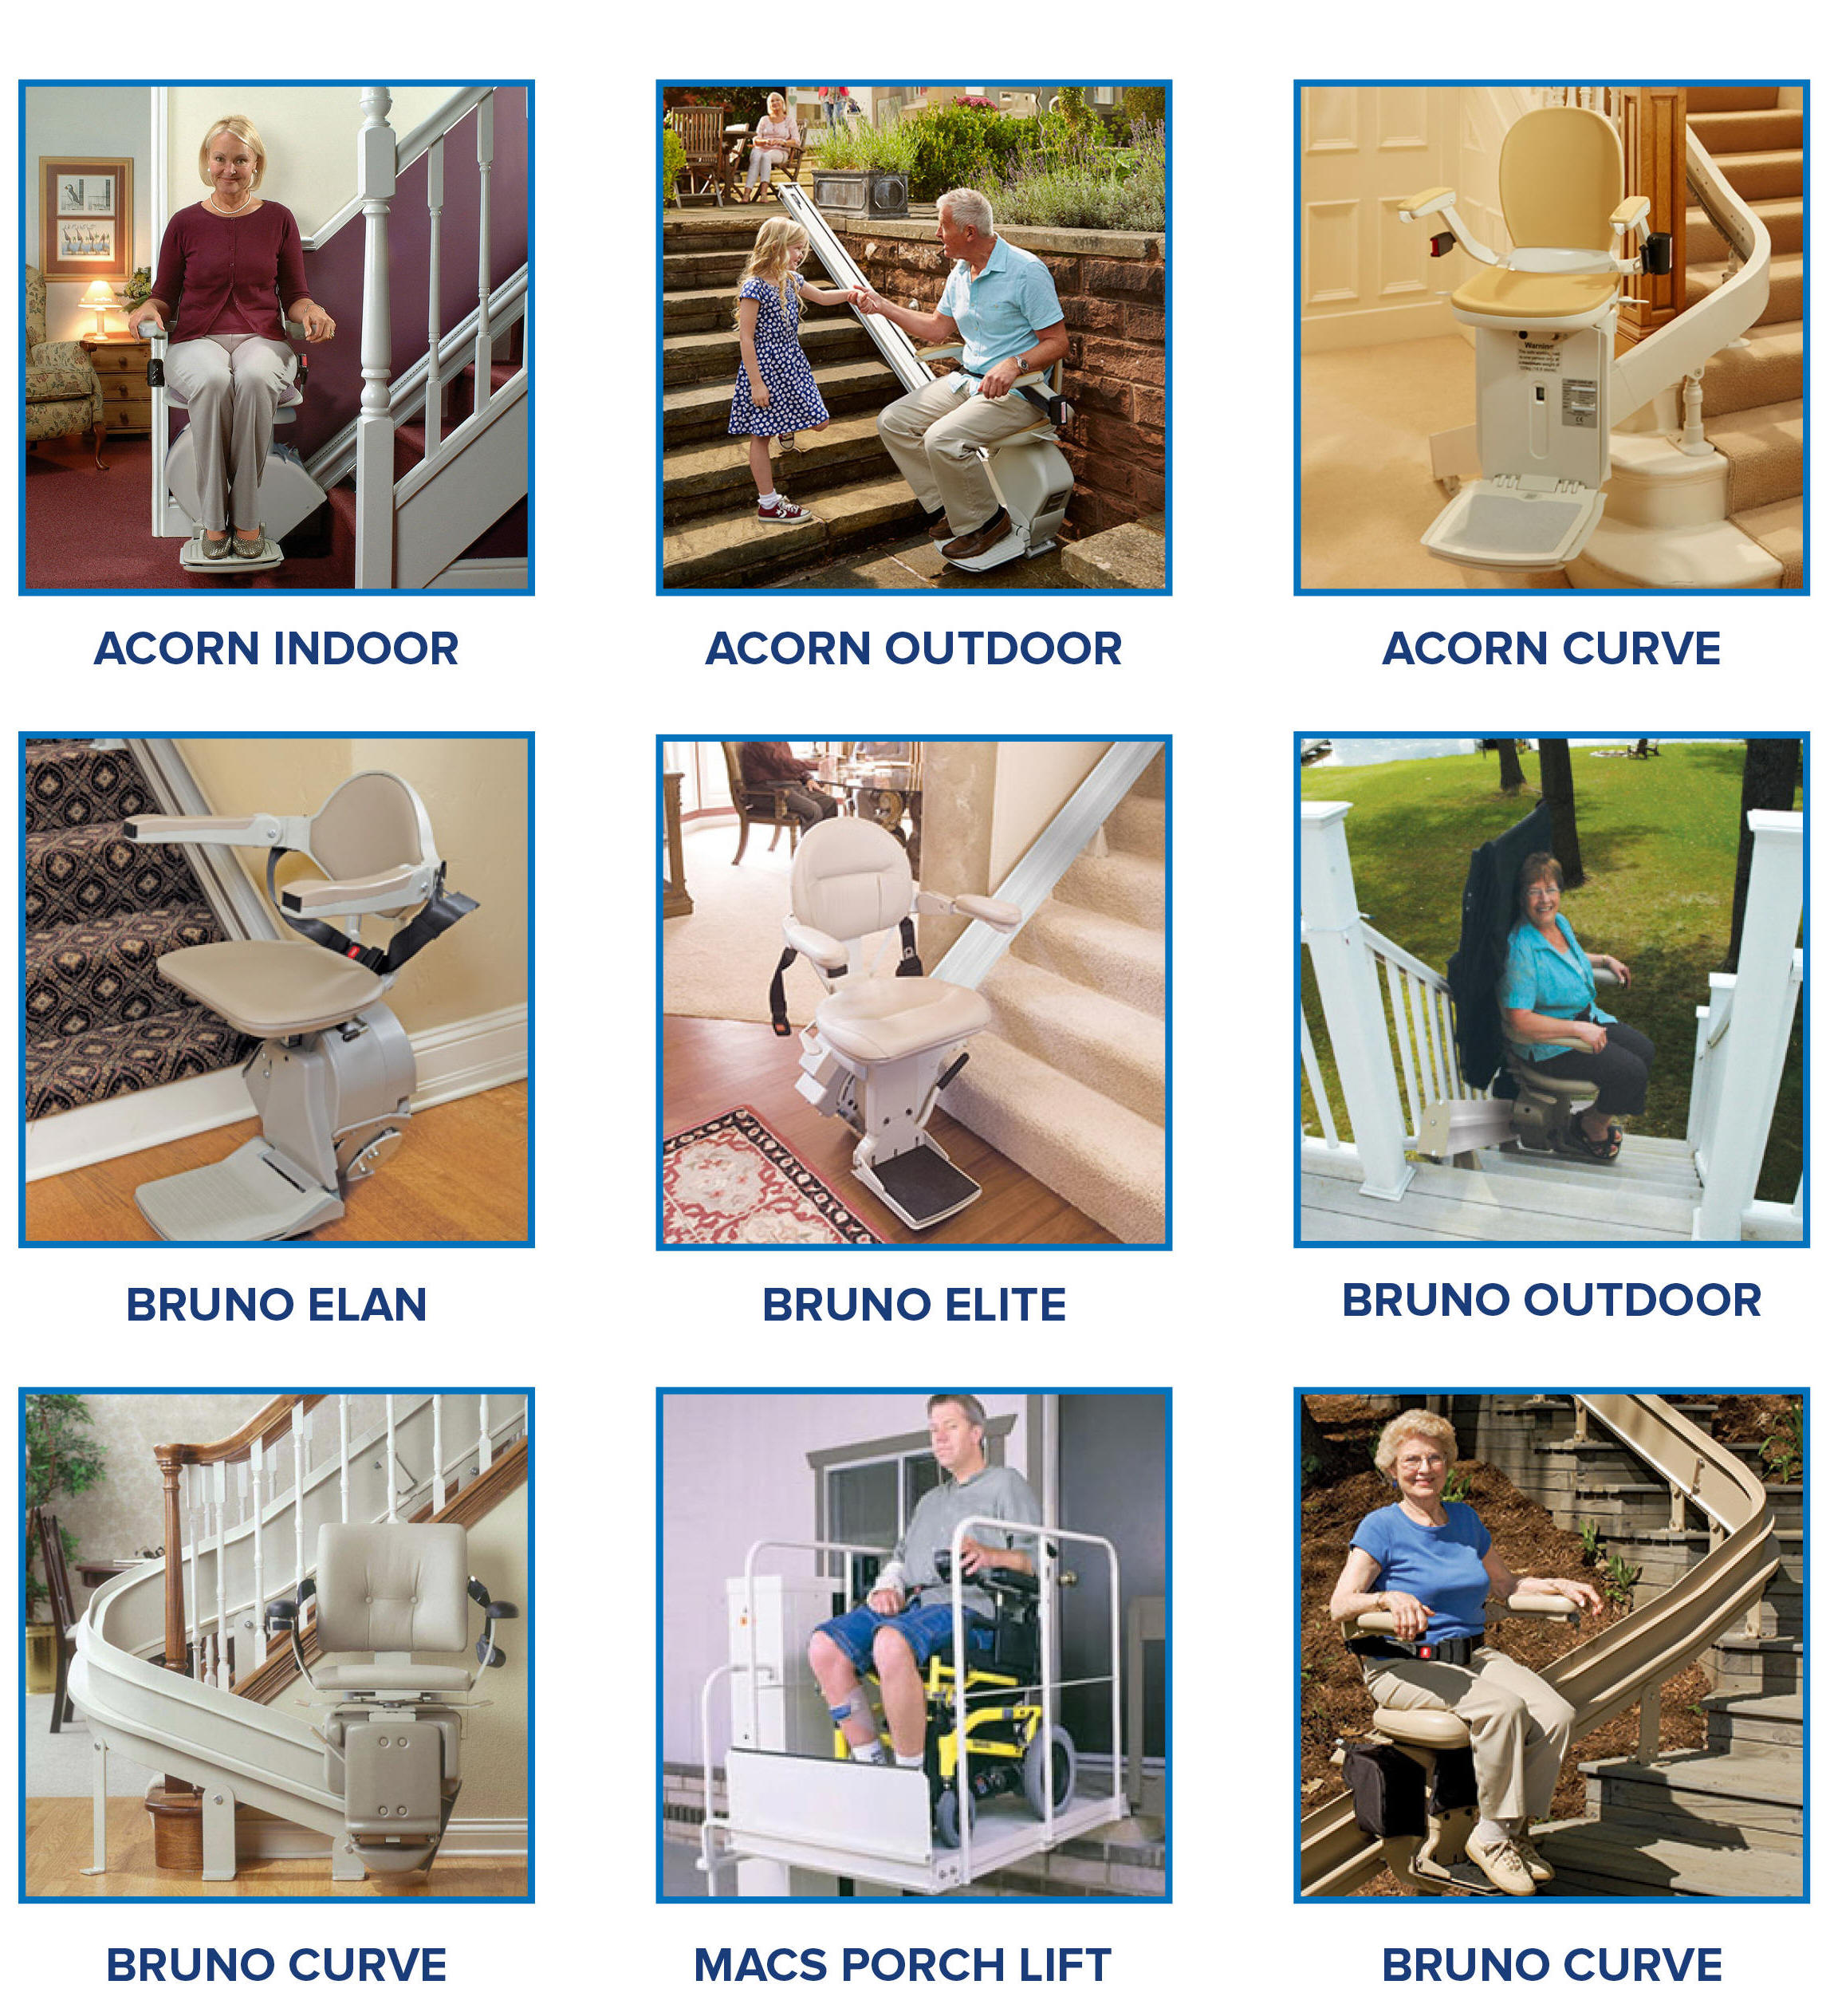 san francisco stairlifts bruno stair lift acorn stairchair